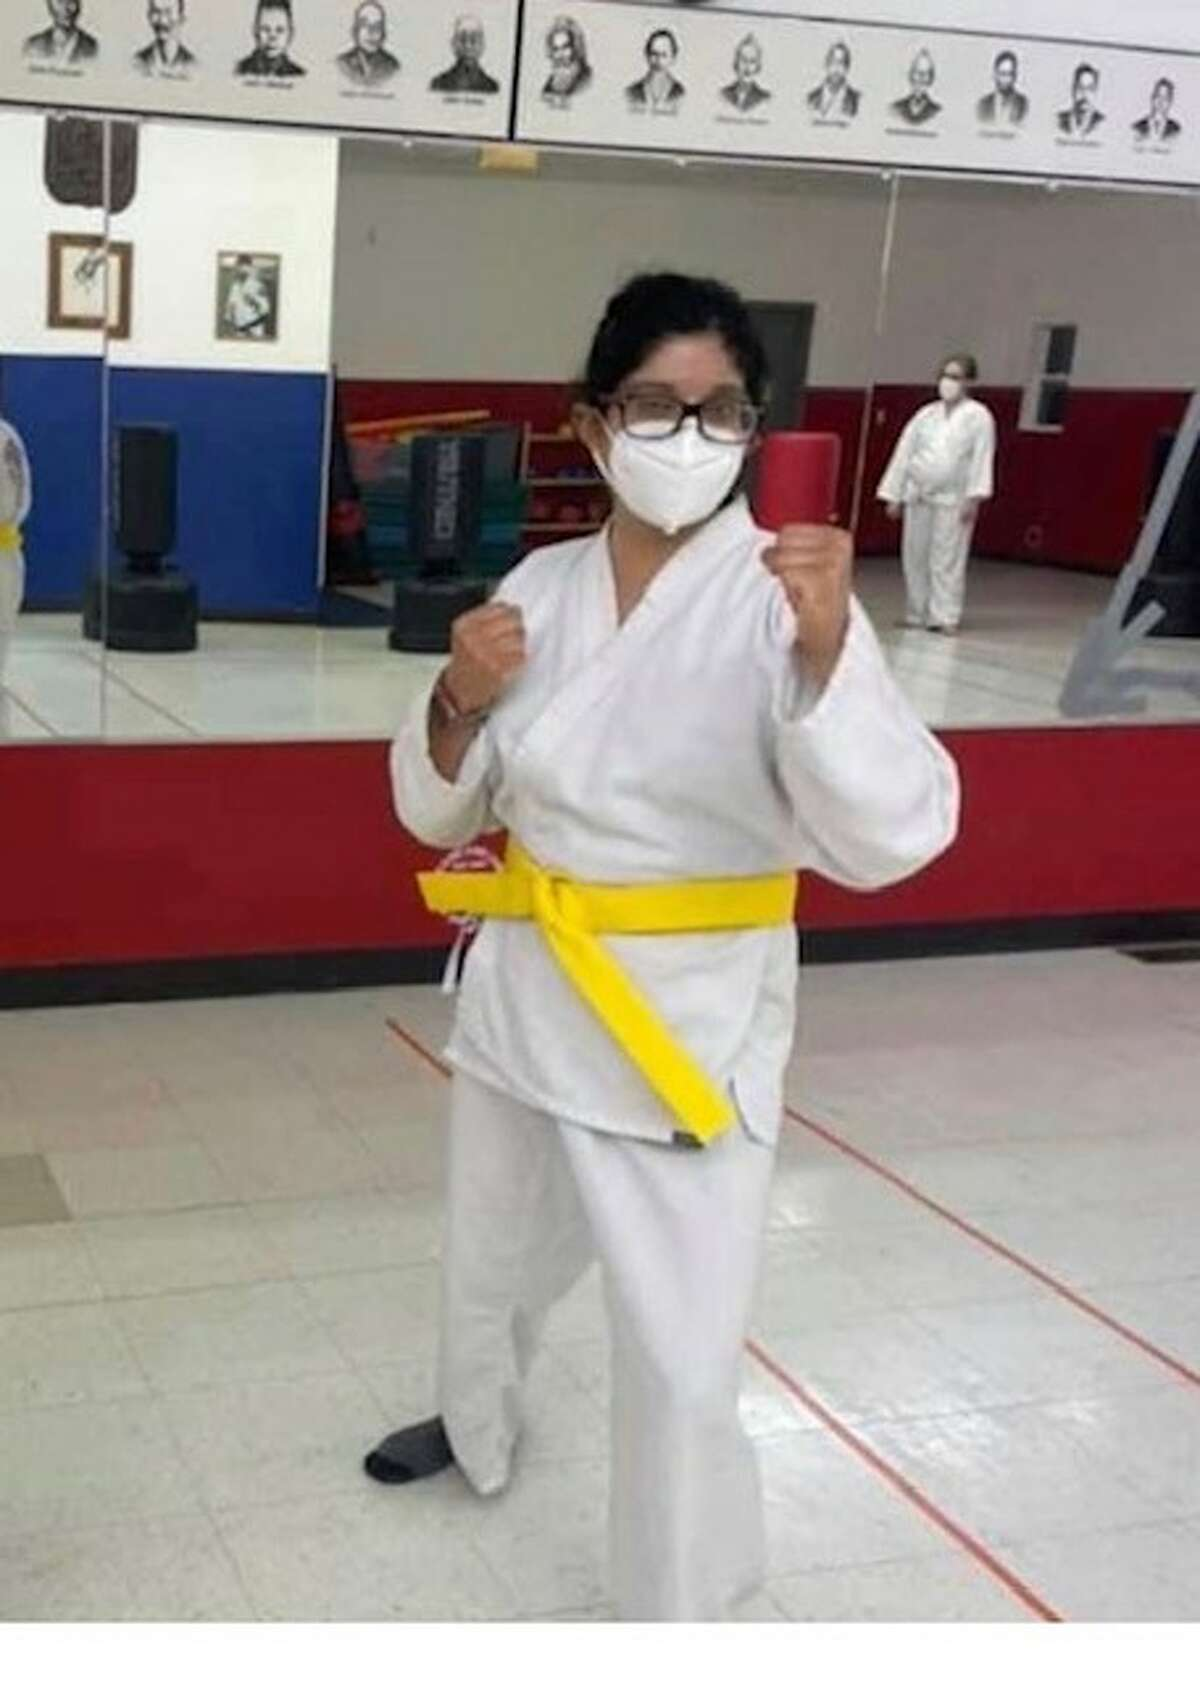 3. In 2019 I became a certified Rape Aggression Defense R.A.D. self-defense instructor. This was a program developed by the police to teach self-defense as a tool to prevent sexual assault and other attacks. I teach self-defense to the students at Transitions. This got me interested in martial arts. I currently have my yellow belt in Zen Do Kai karate and my goal is to get a black belt one day.